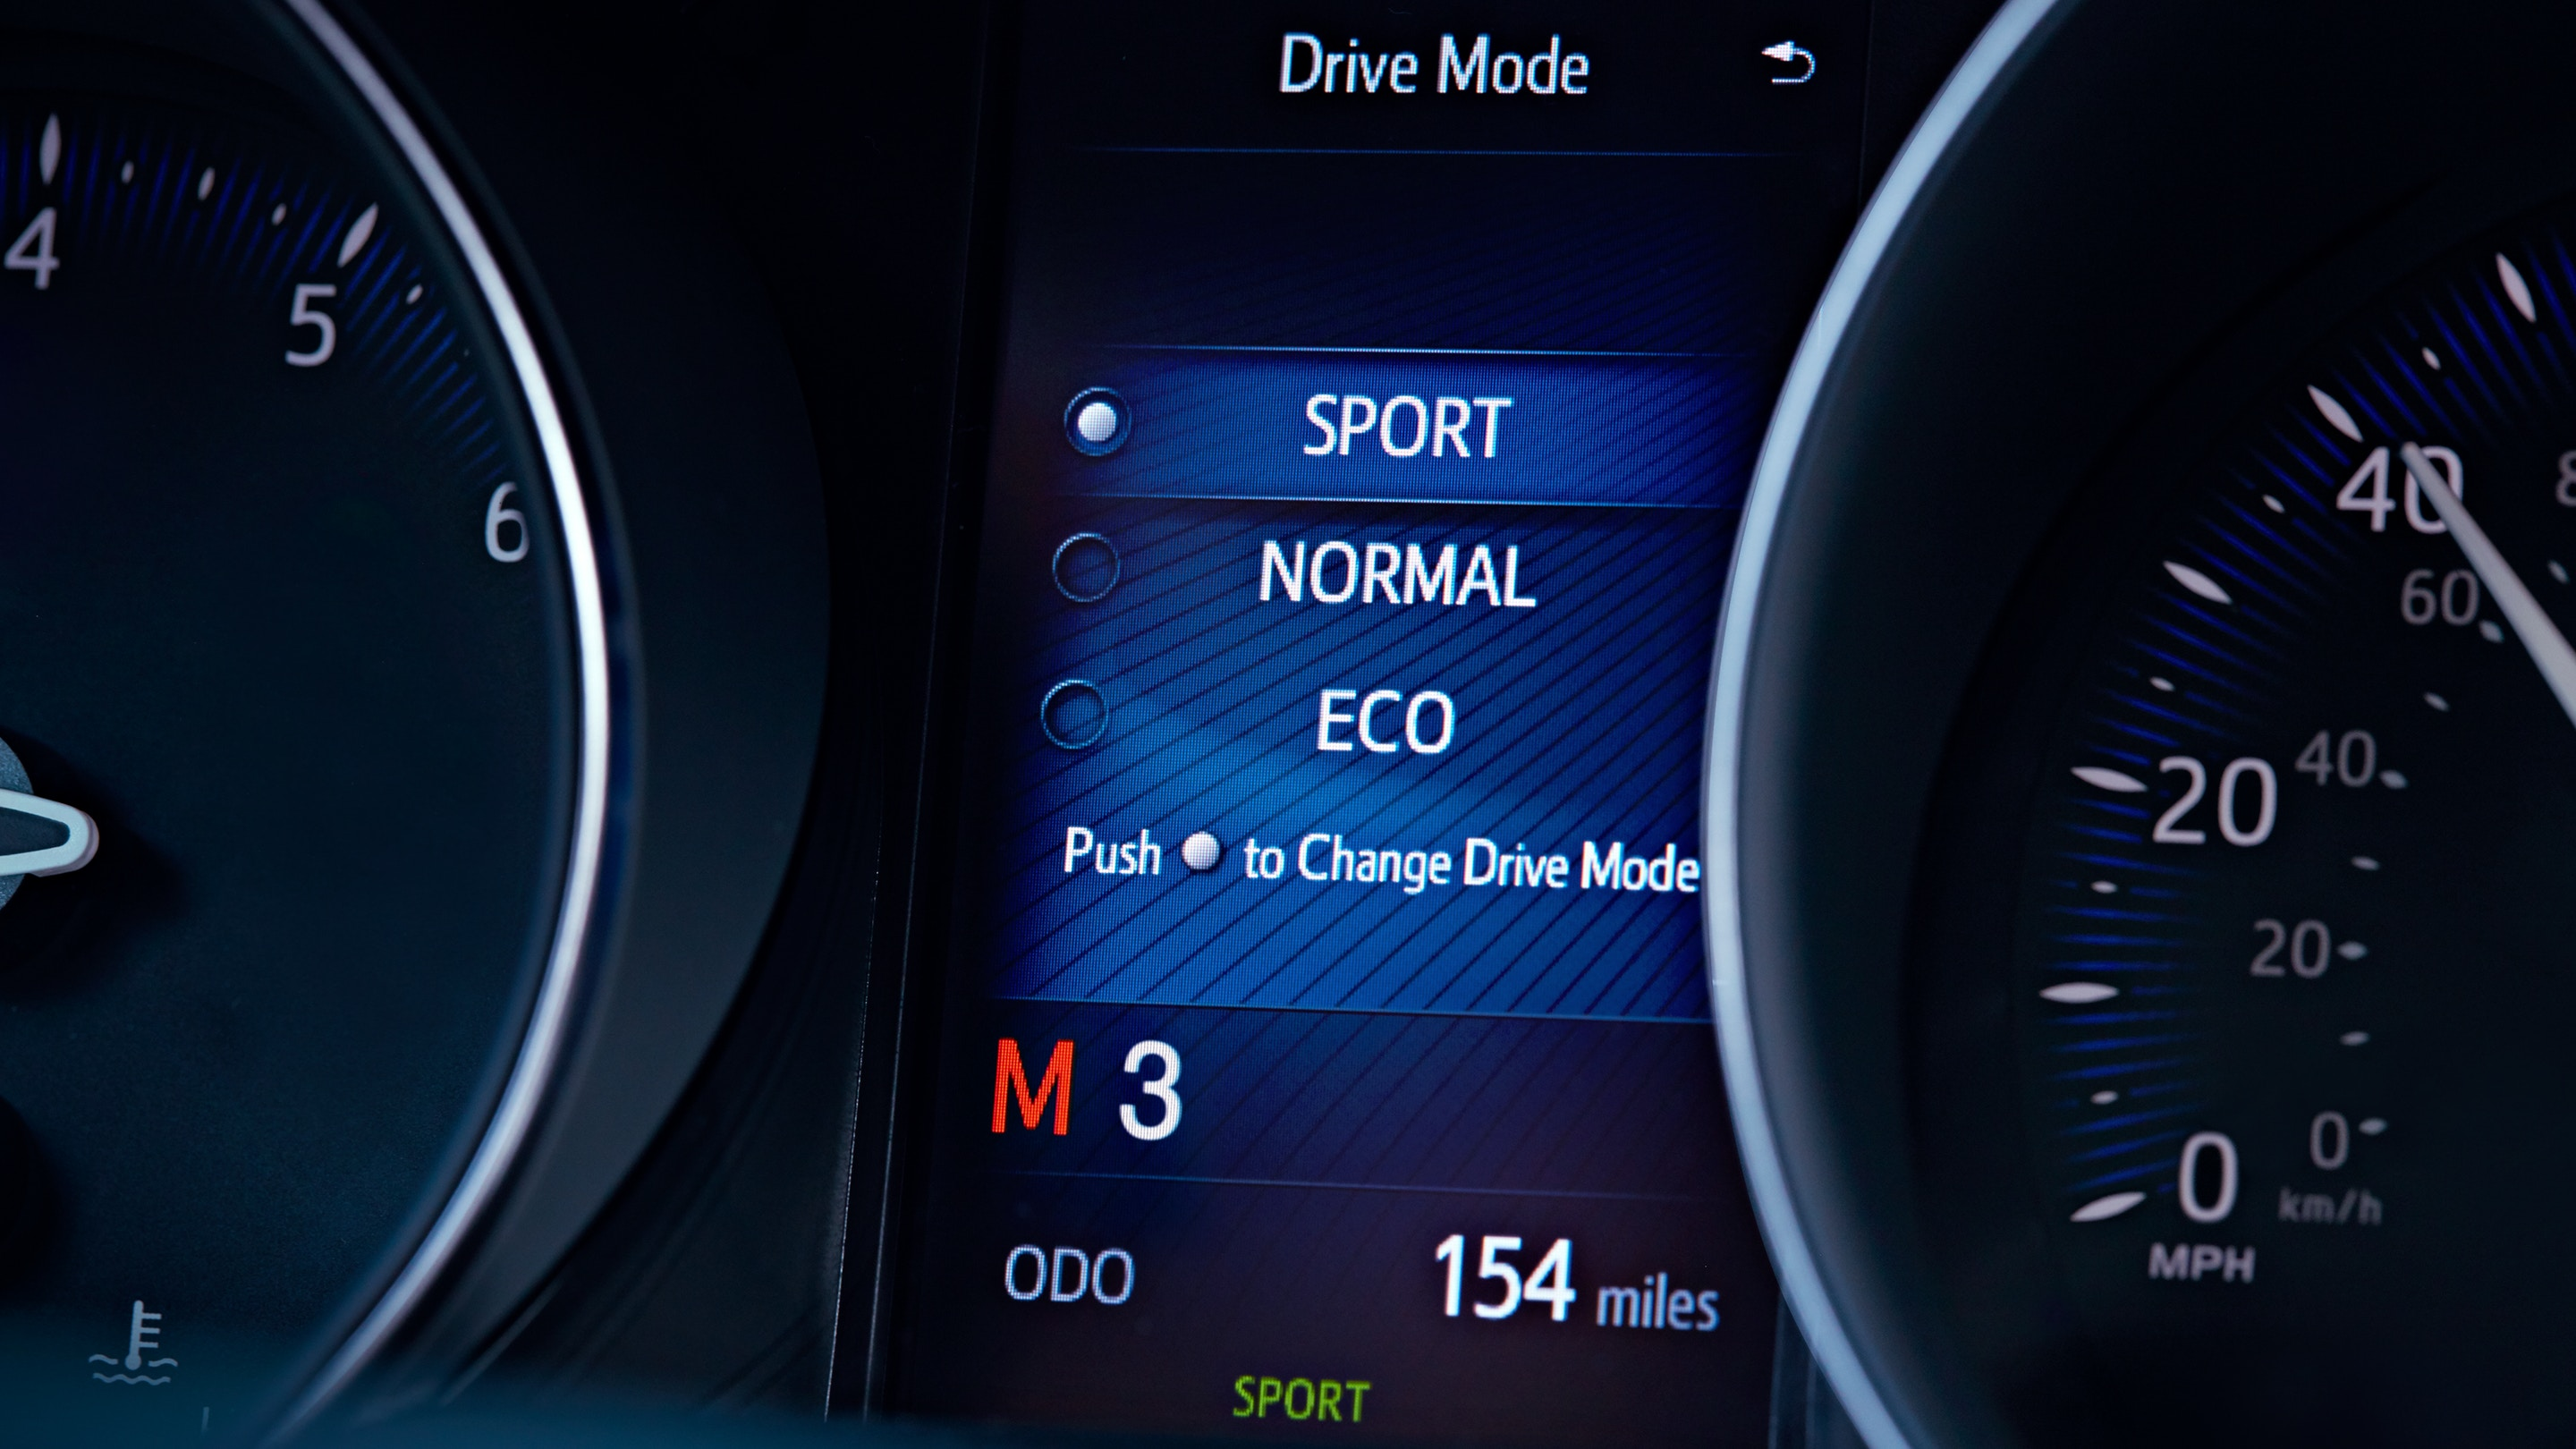 Switch Up Driving Modes in the 2019 C-HR